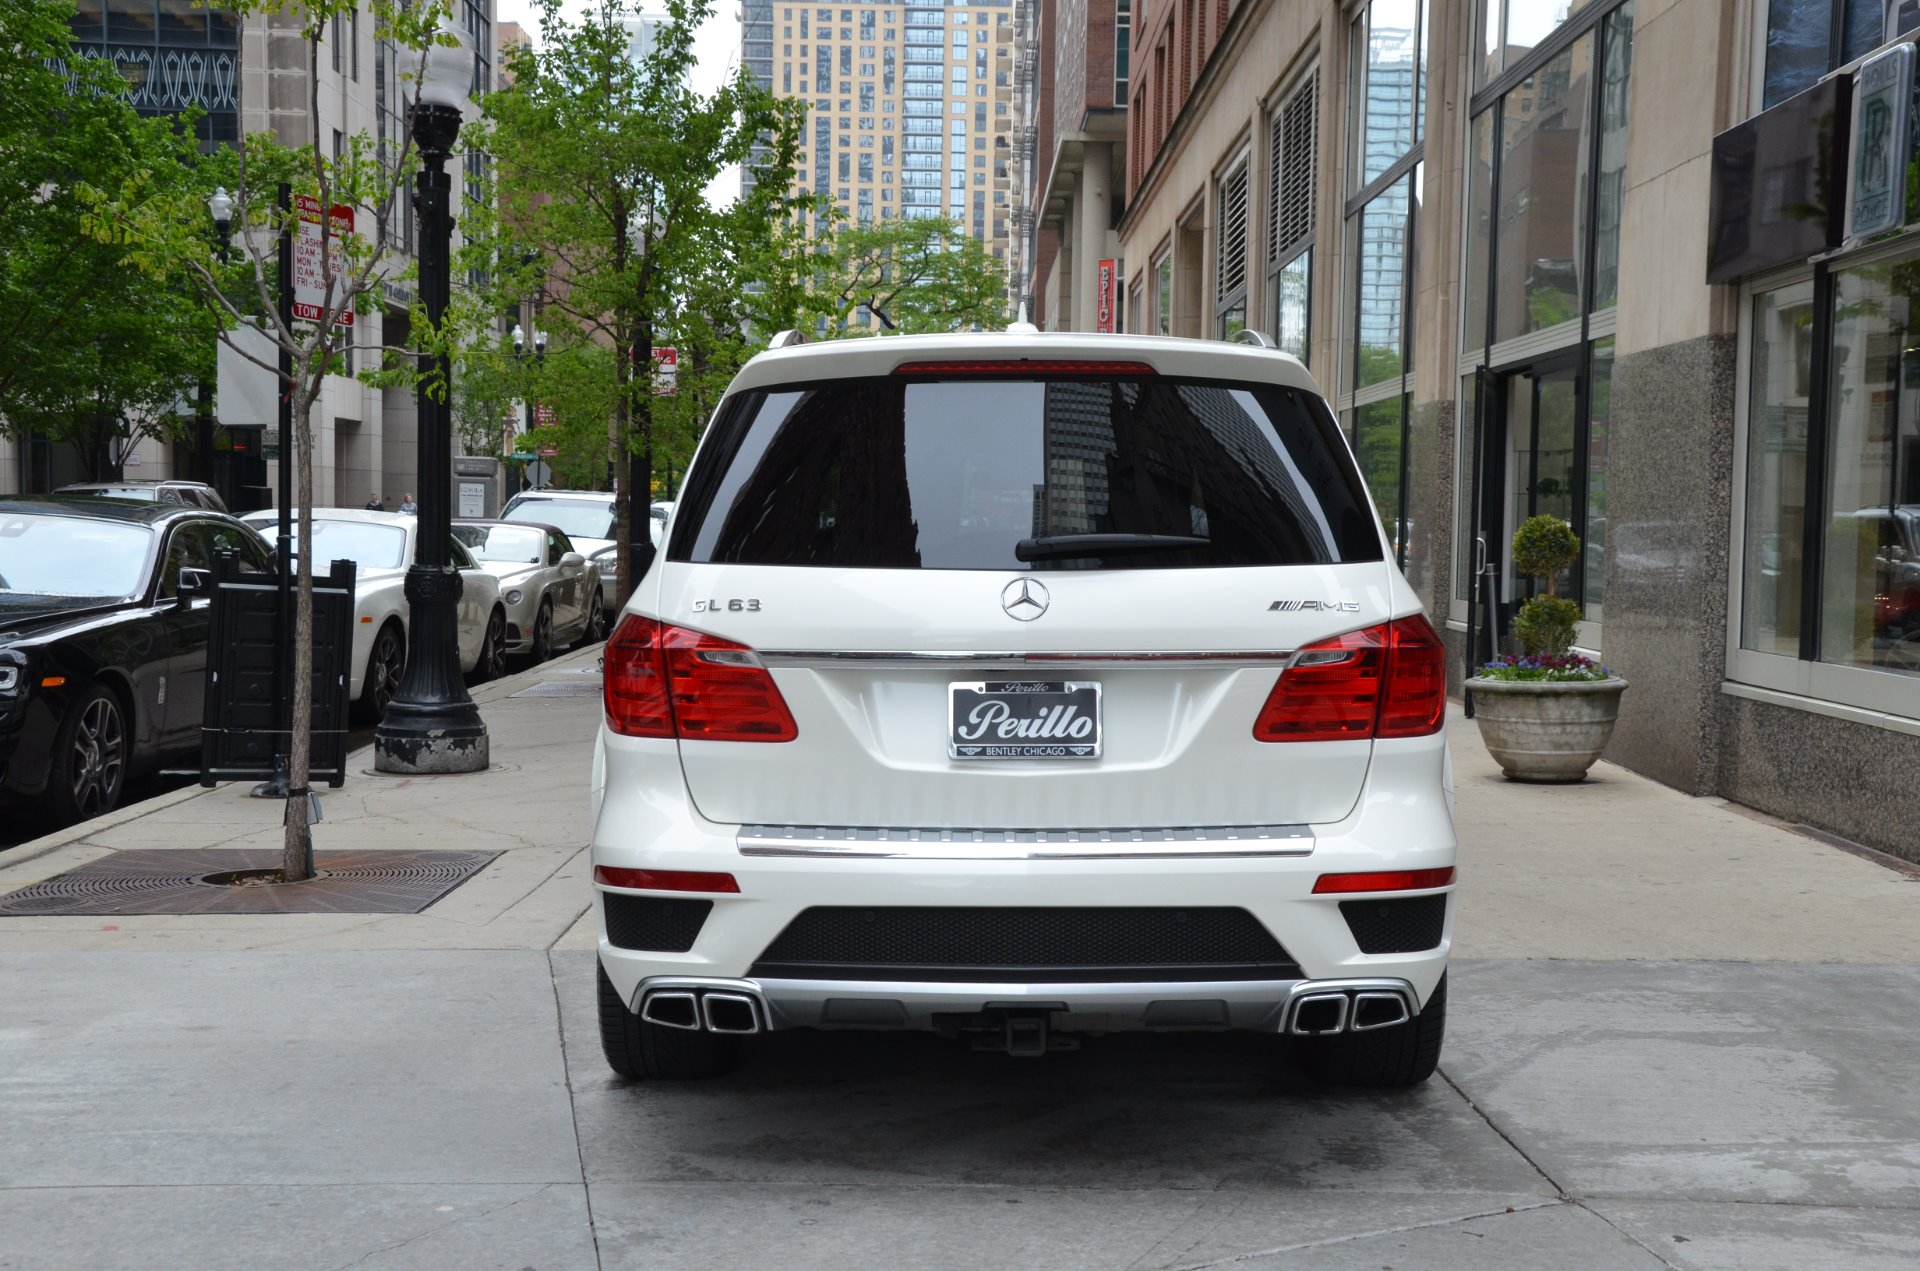 2014 mercedes benz gl class gl 63 amg stock b905a for for 2014 mercedes benz gl450 price